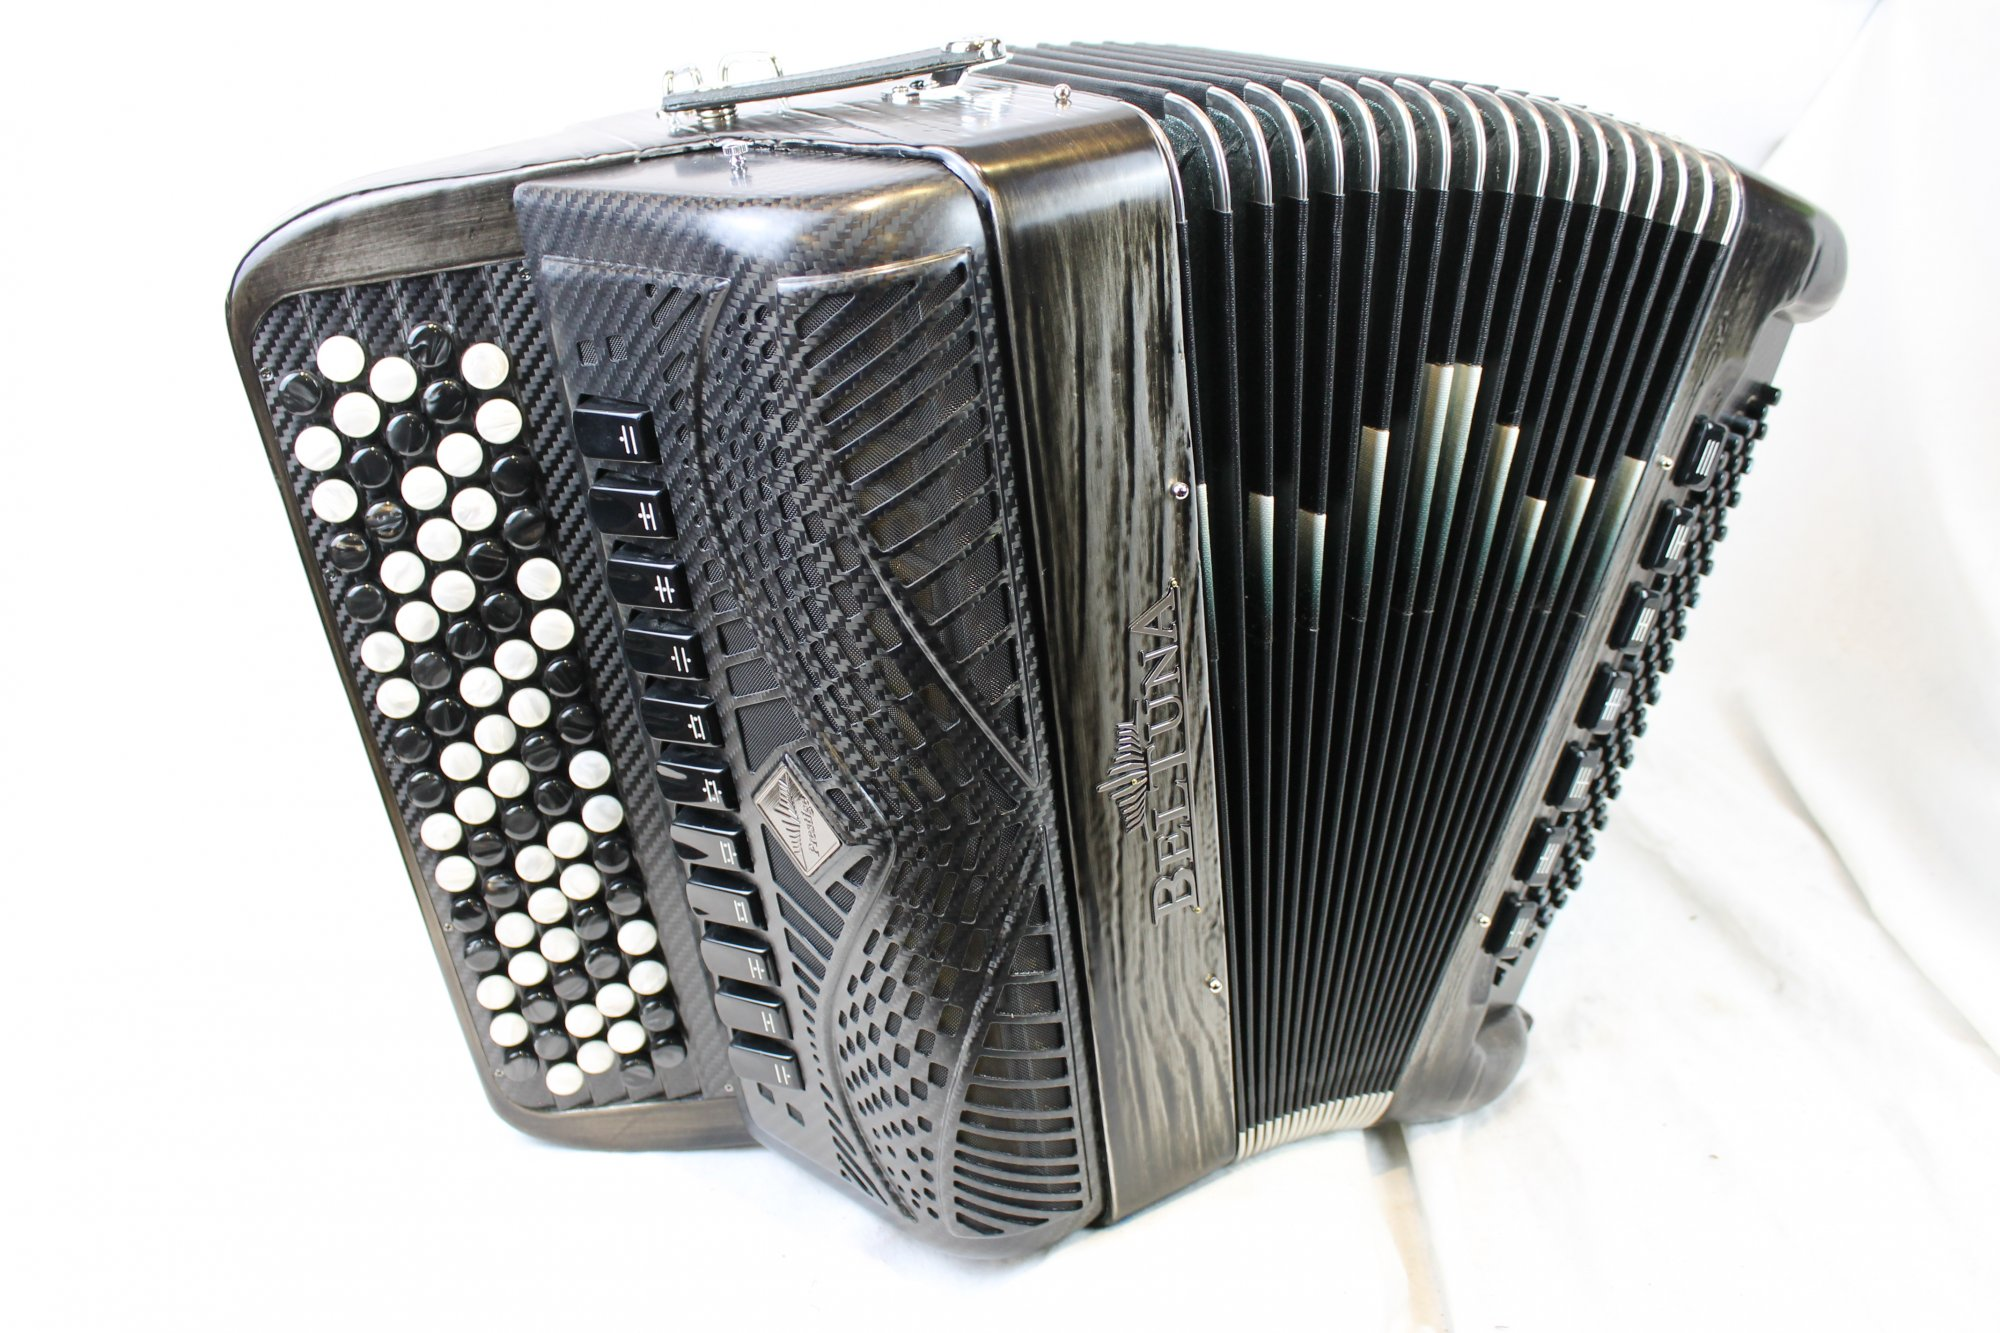 NEW Platinum Beltuna Prestige 3050P Fly Chromatic Button Accordion C LMMH 82 96